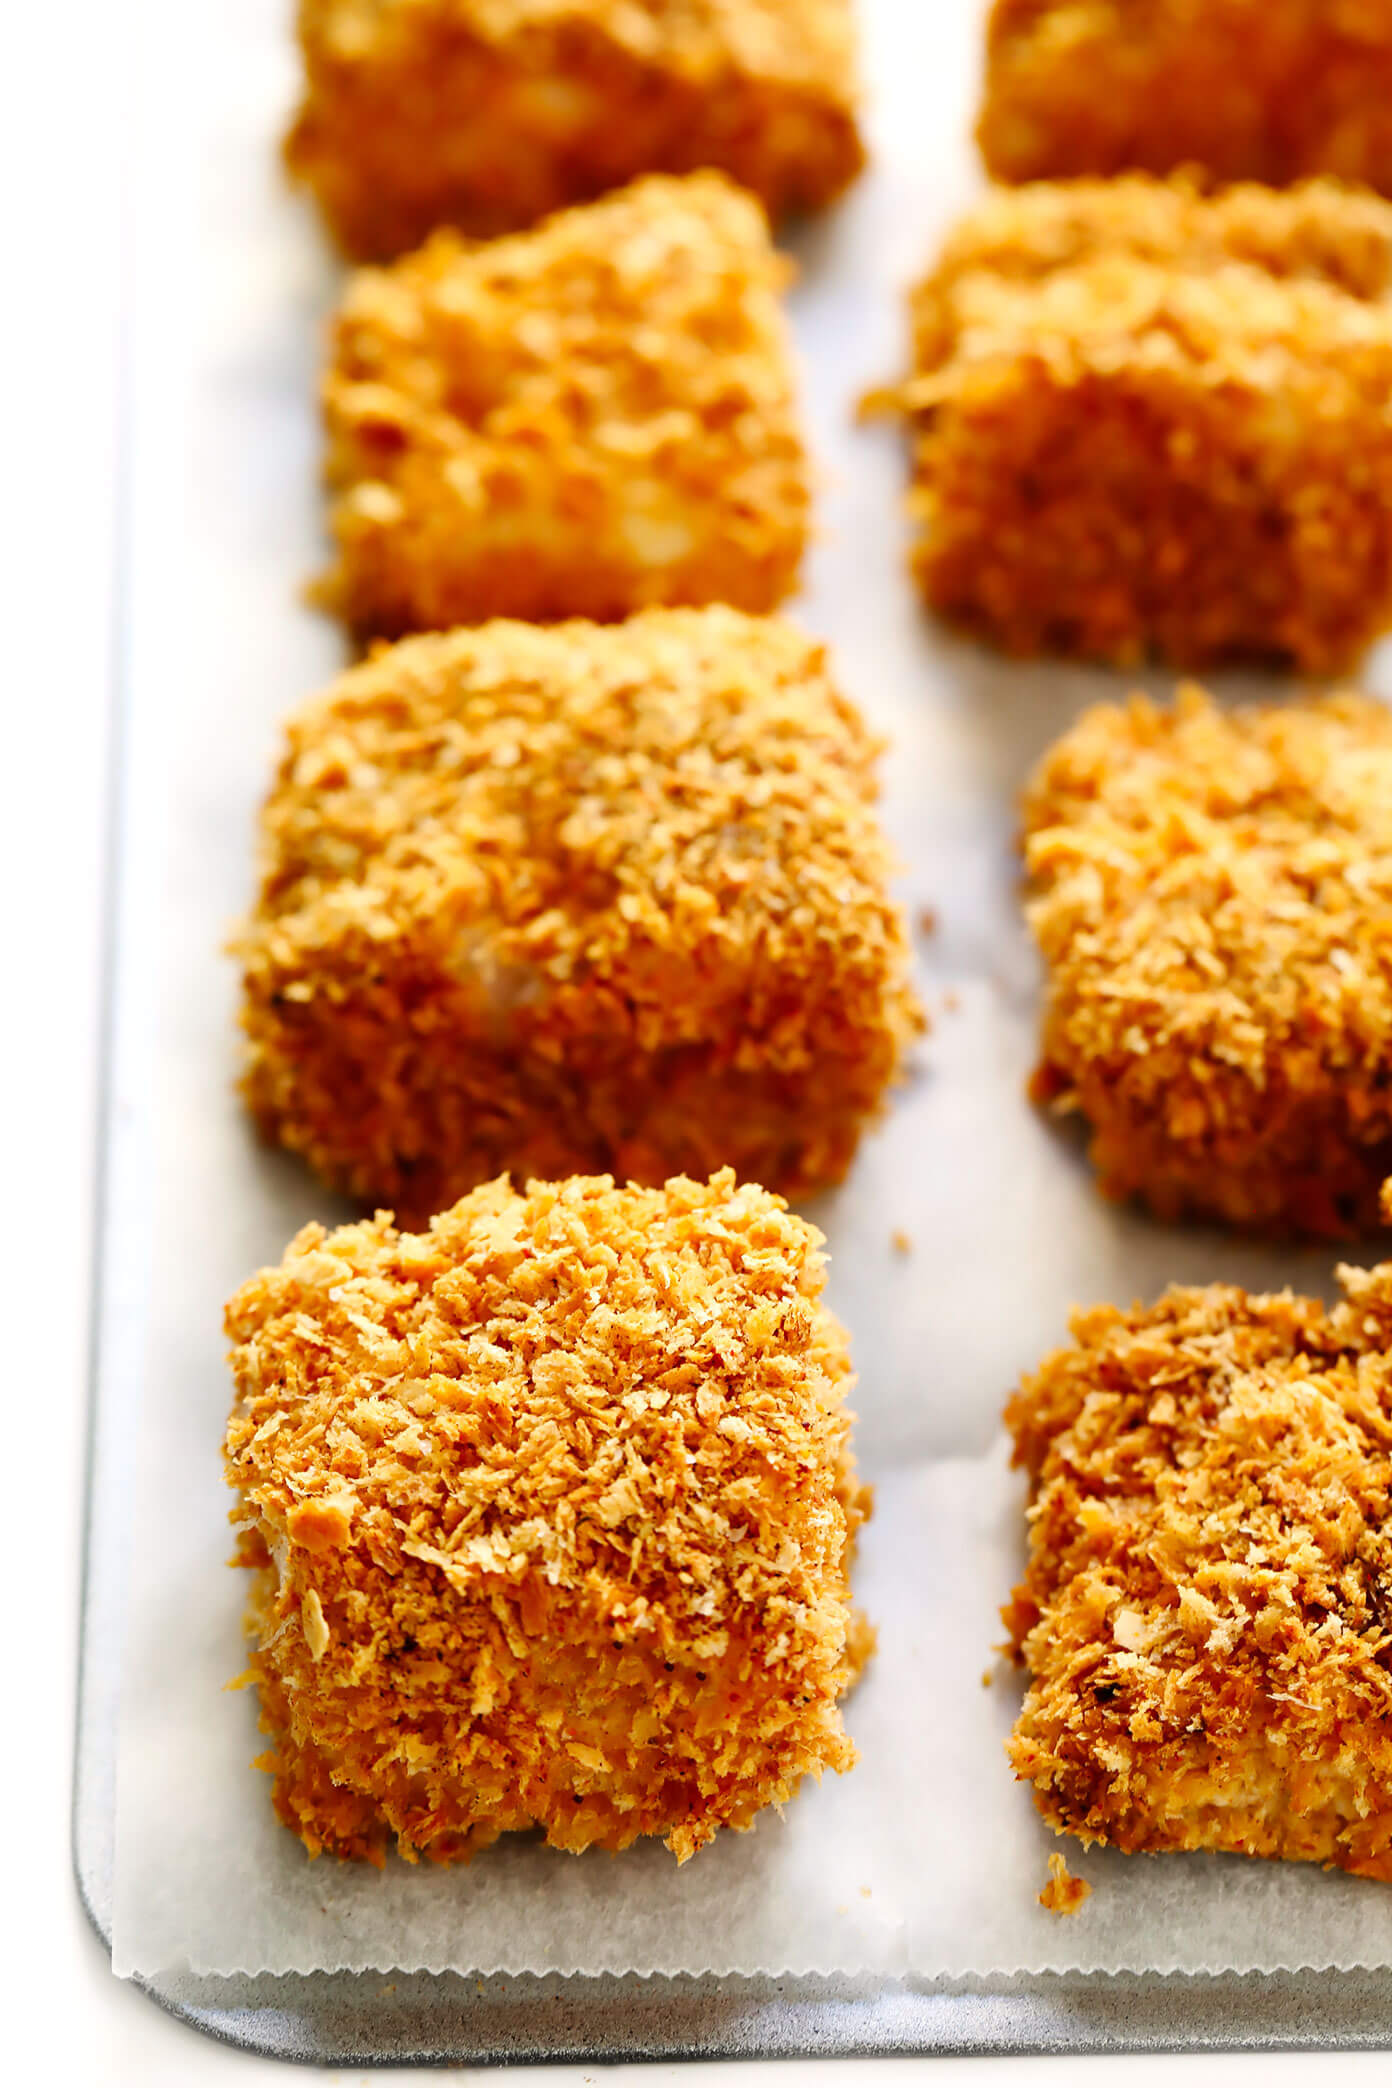 Baked Panko-Crusted Cod for Fish Tacos